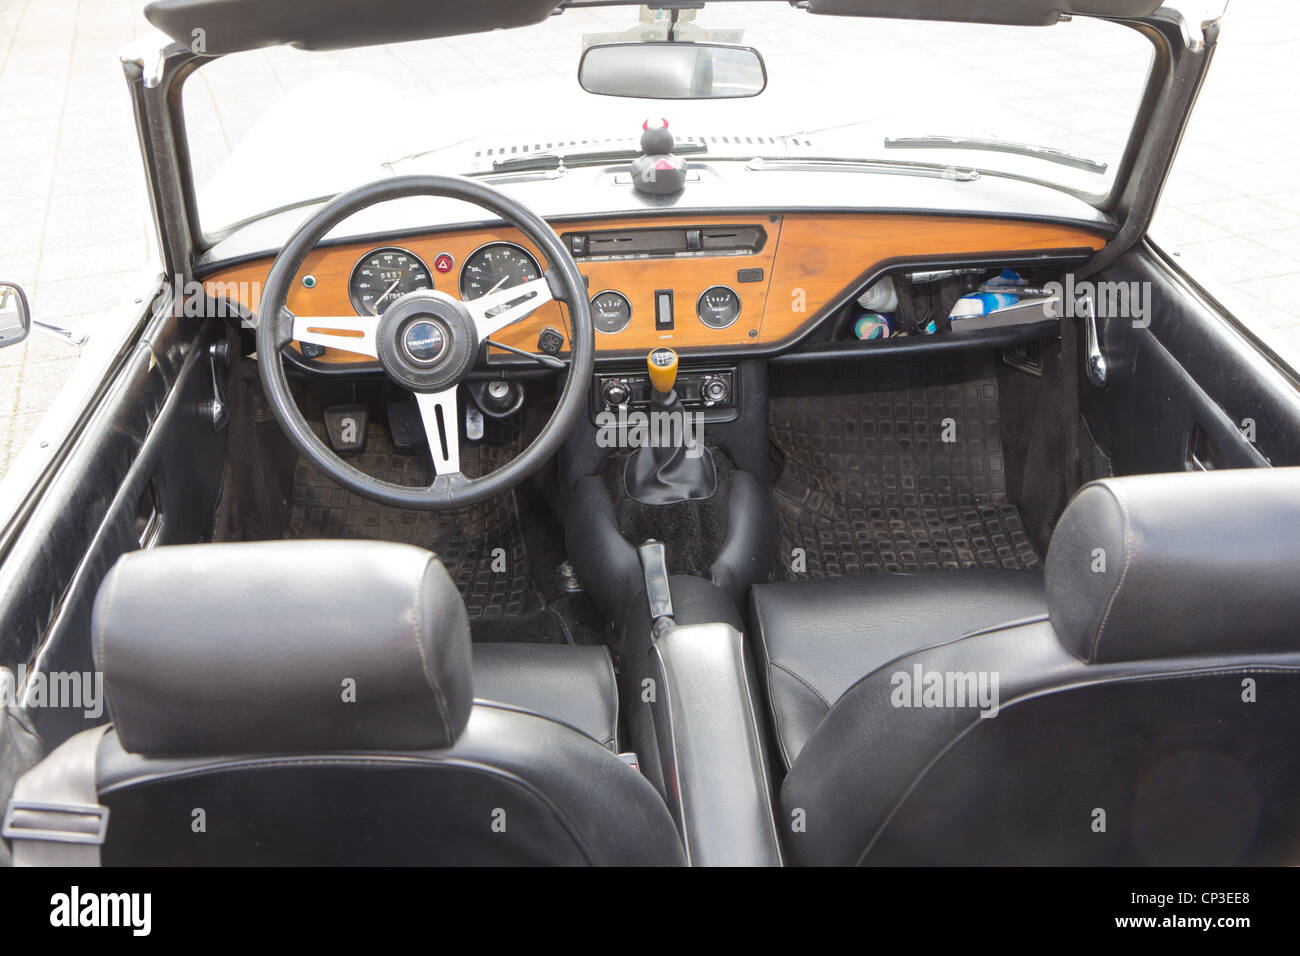 vintage race car triumph spitfire mk i interior from 1964 stock photo 48020400 alamy. Black Bedroom Furniture Sets. Home Design Ideas